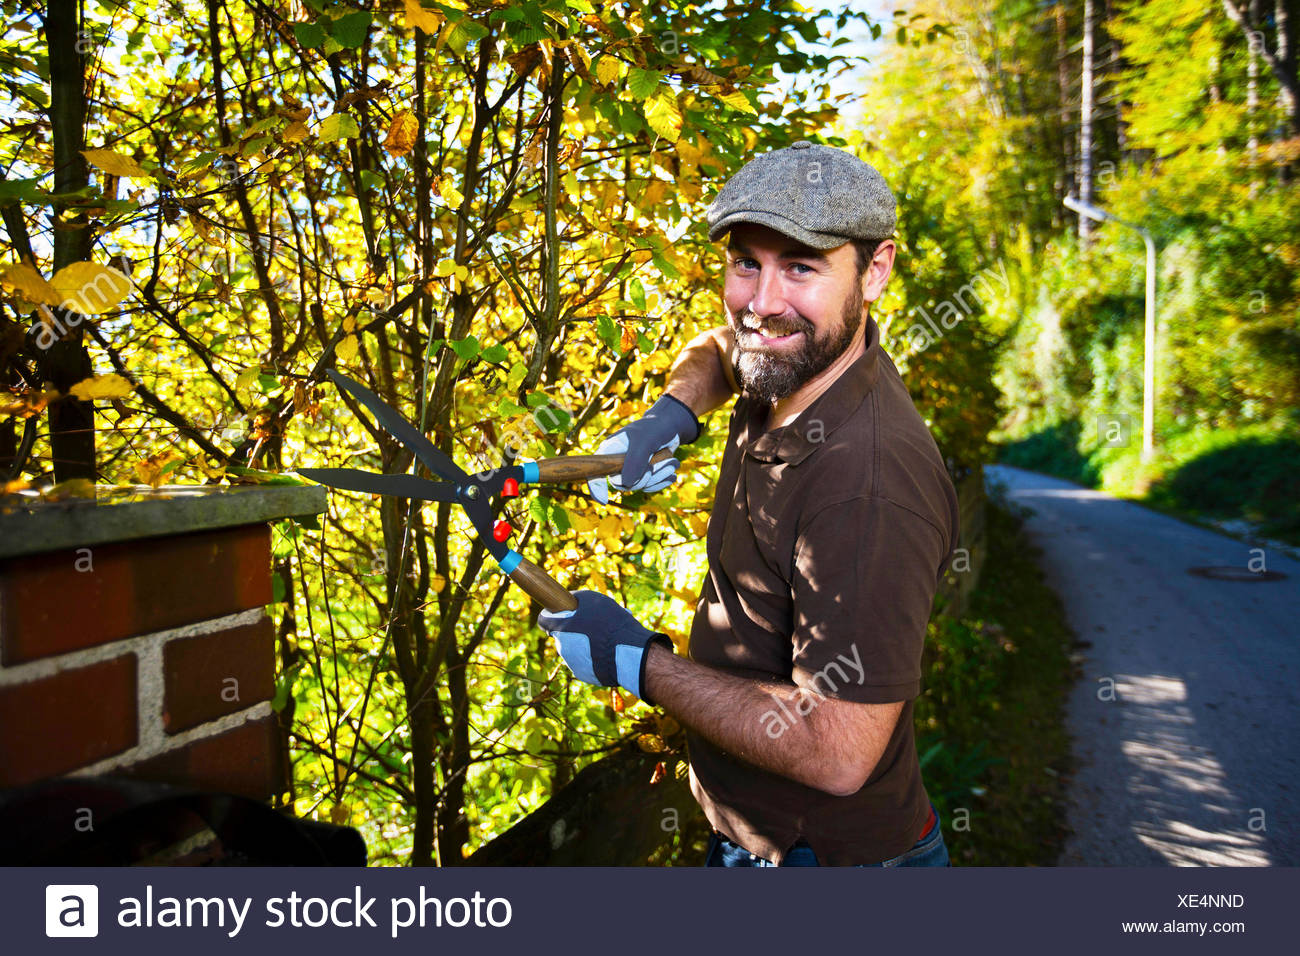 Man trimming plants by garden fence, Munich, Bavaria, Germany - Stock Image